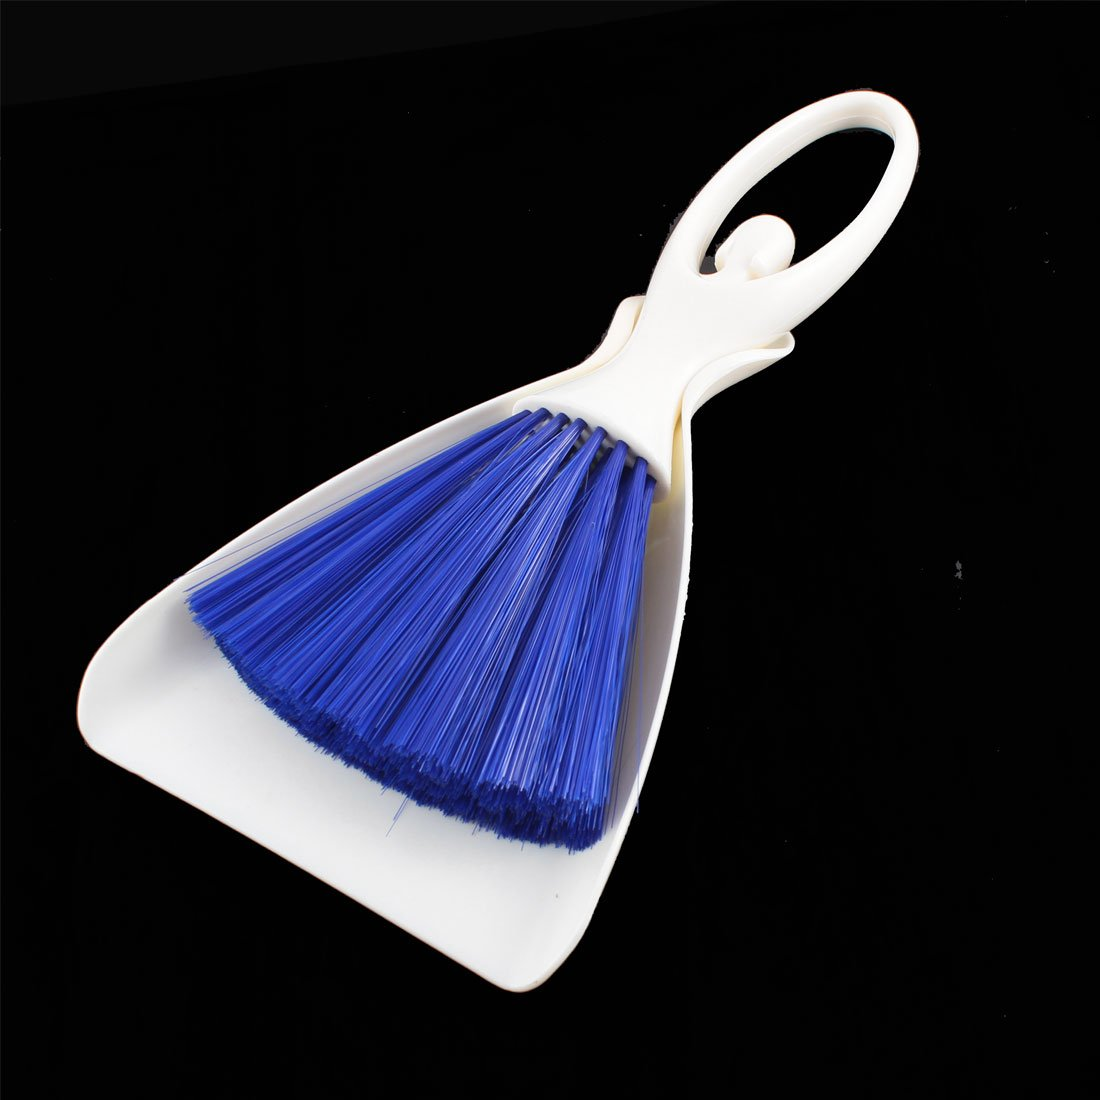 Uxcell a15091700ux0023 Plastic Brush Dustpan Set Brushes & Dusters